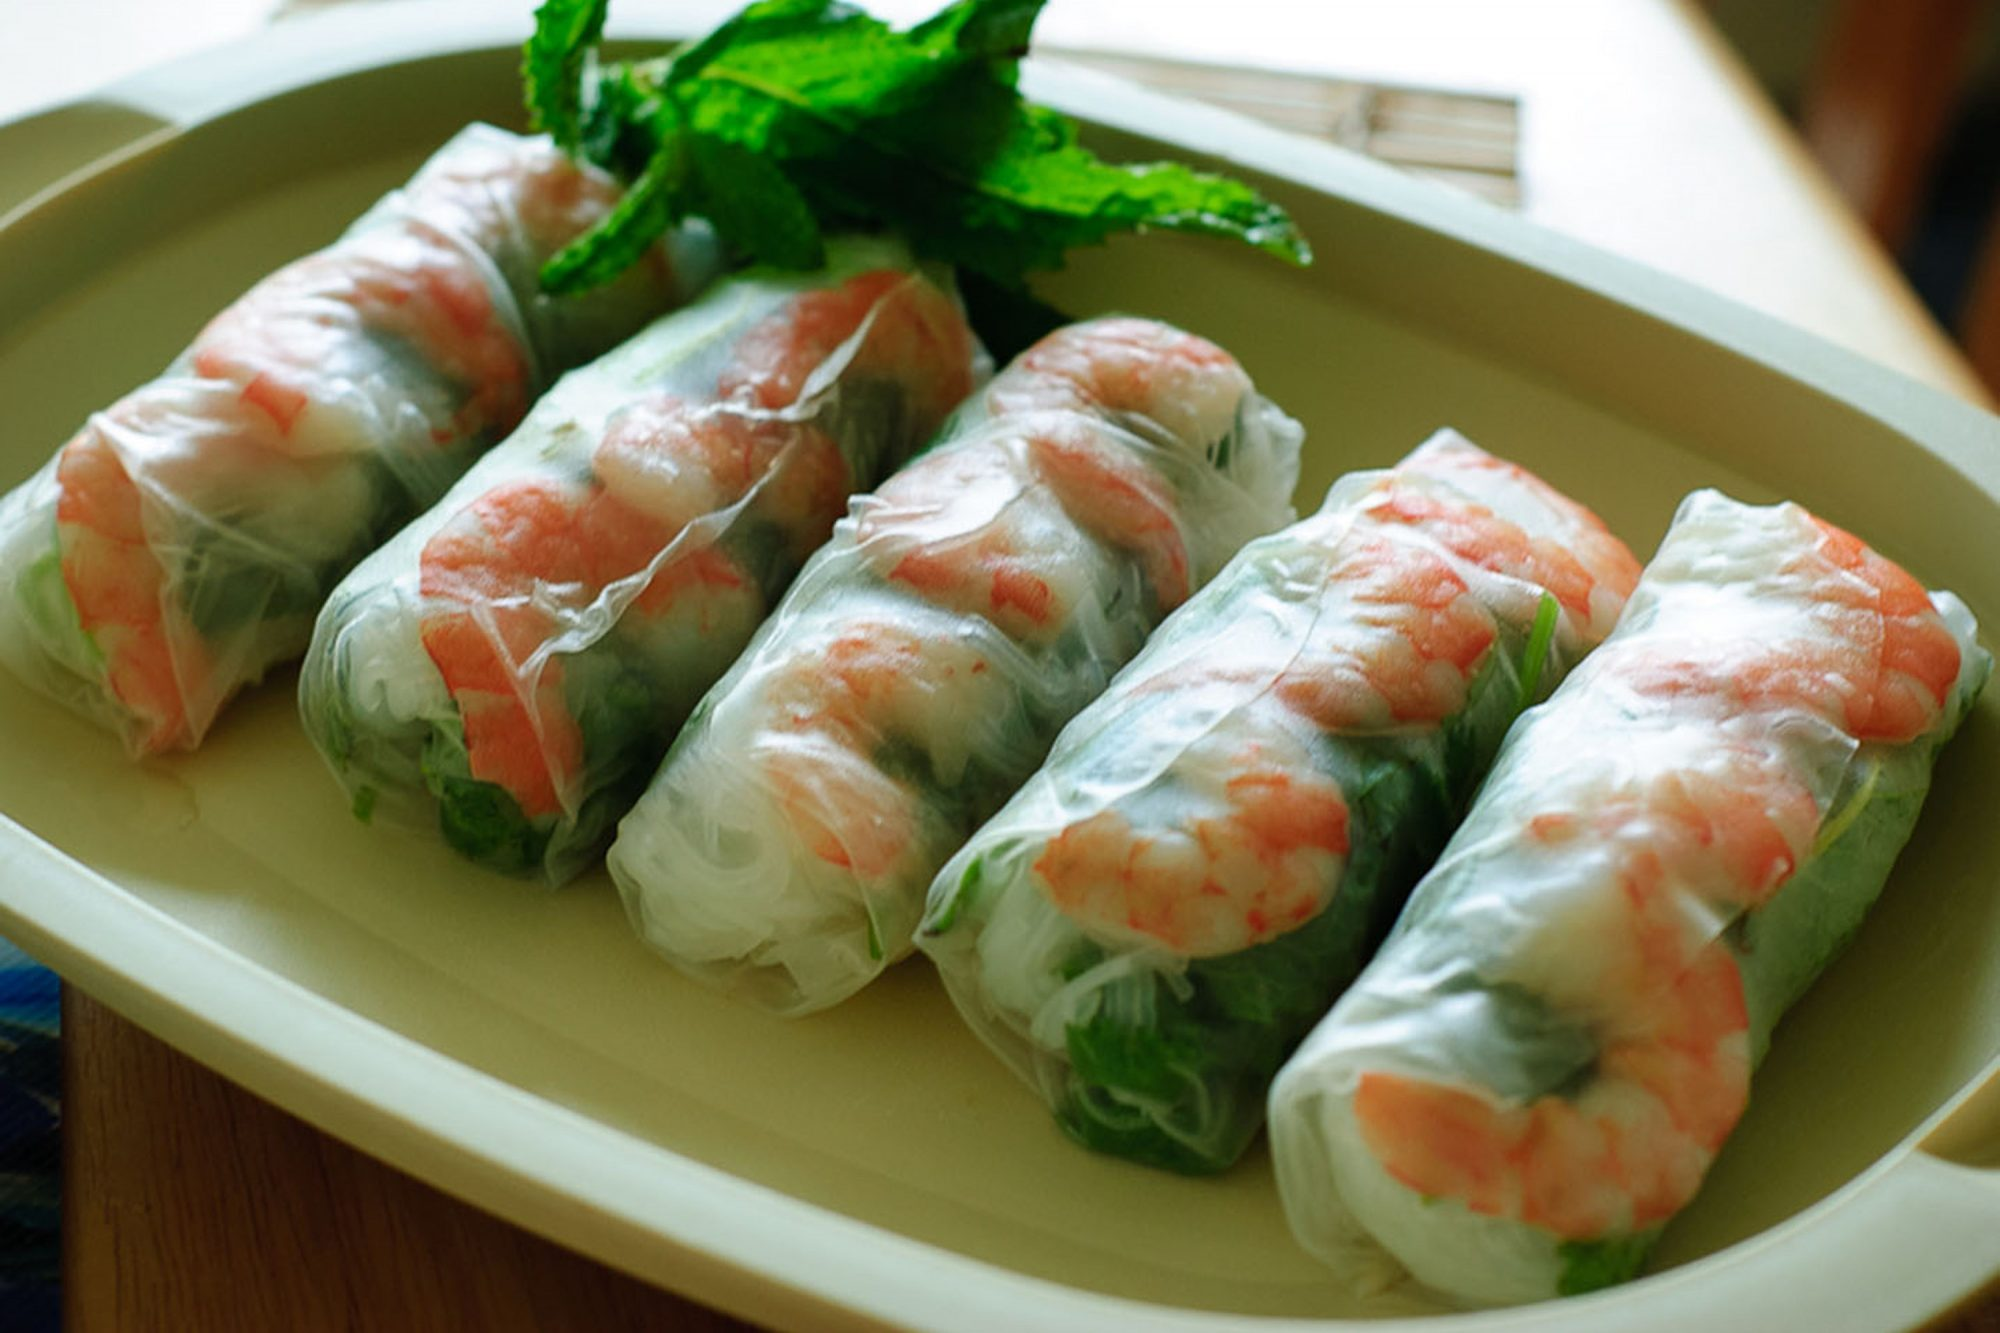 Vietnamese Fresh Spring Rolls on green plate